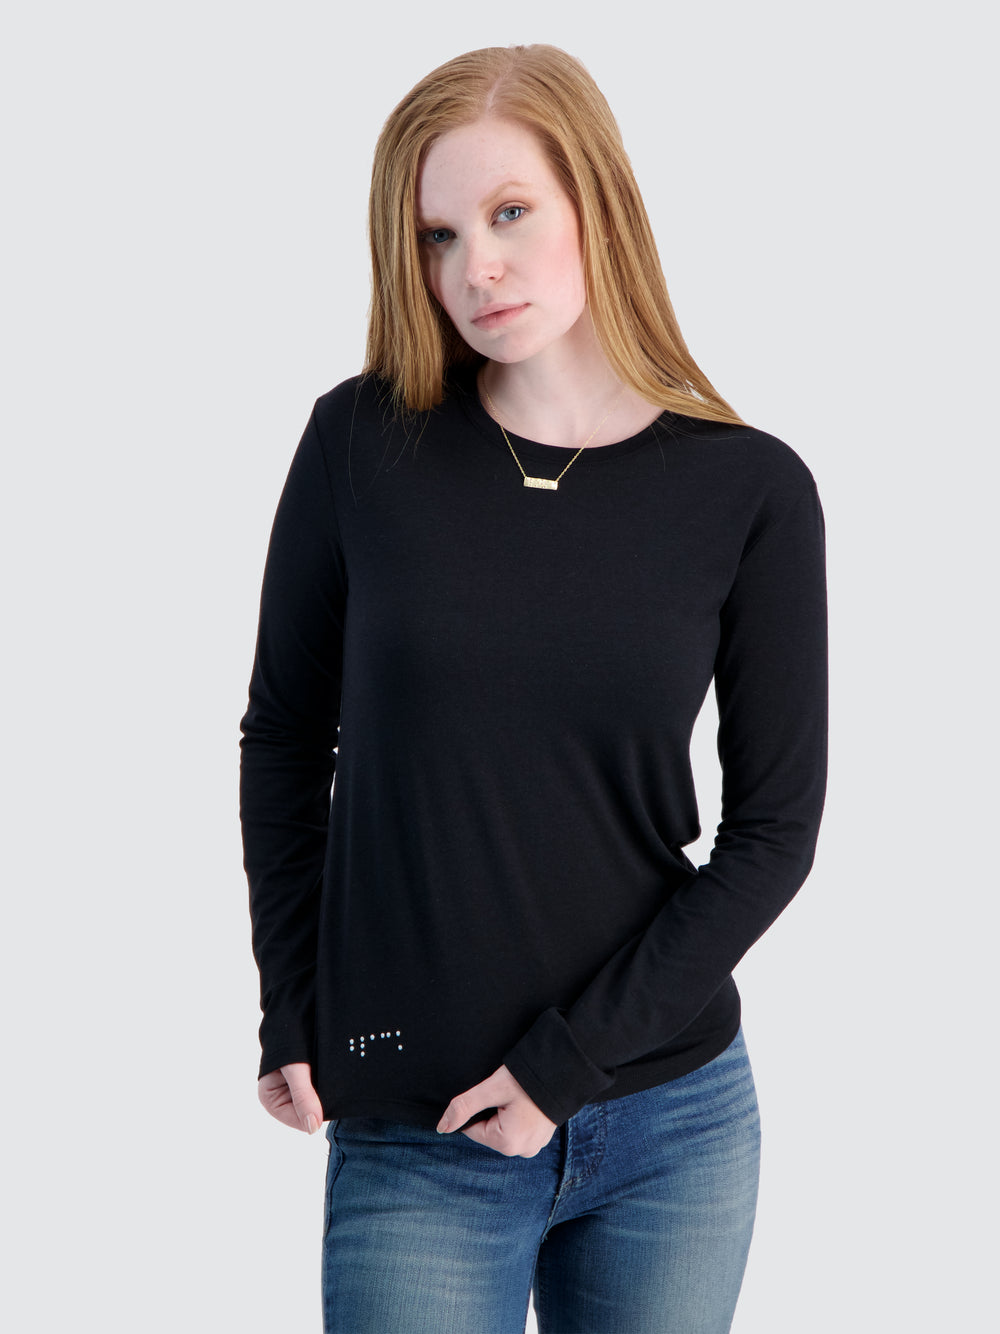 Two Blind Brothers - Womens Women's Long Sleeve Crewneck Navy